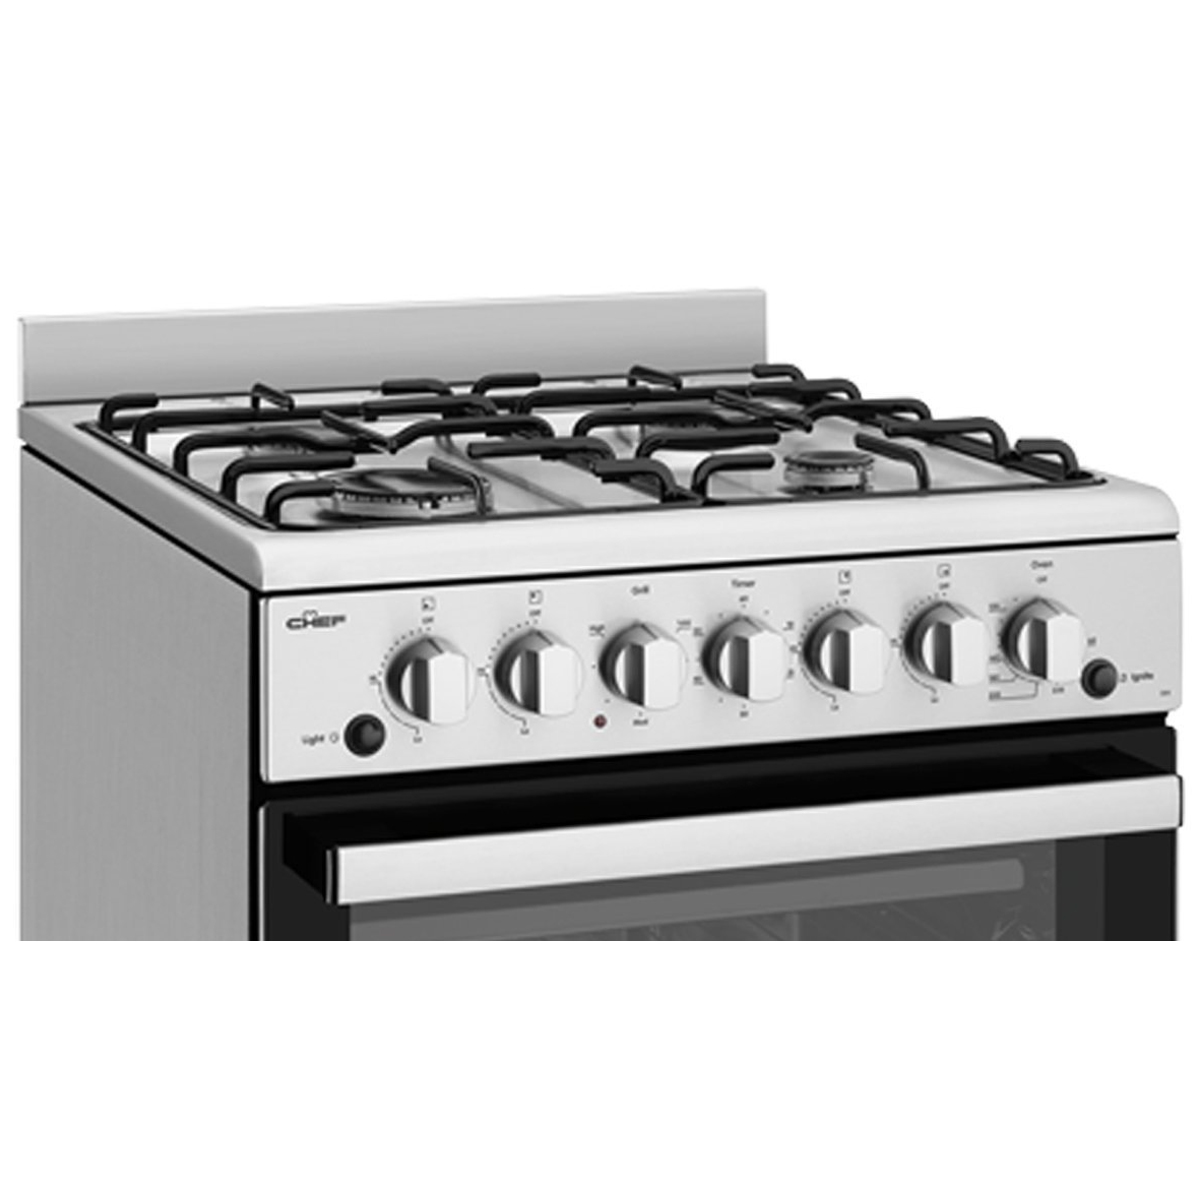 Chef CFG504SBNG 54cm Freestanding Natural Gas Oven/Stove 86464